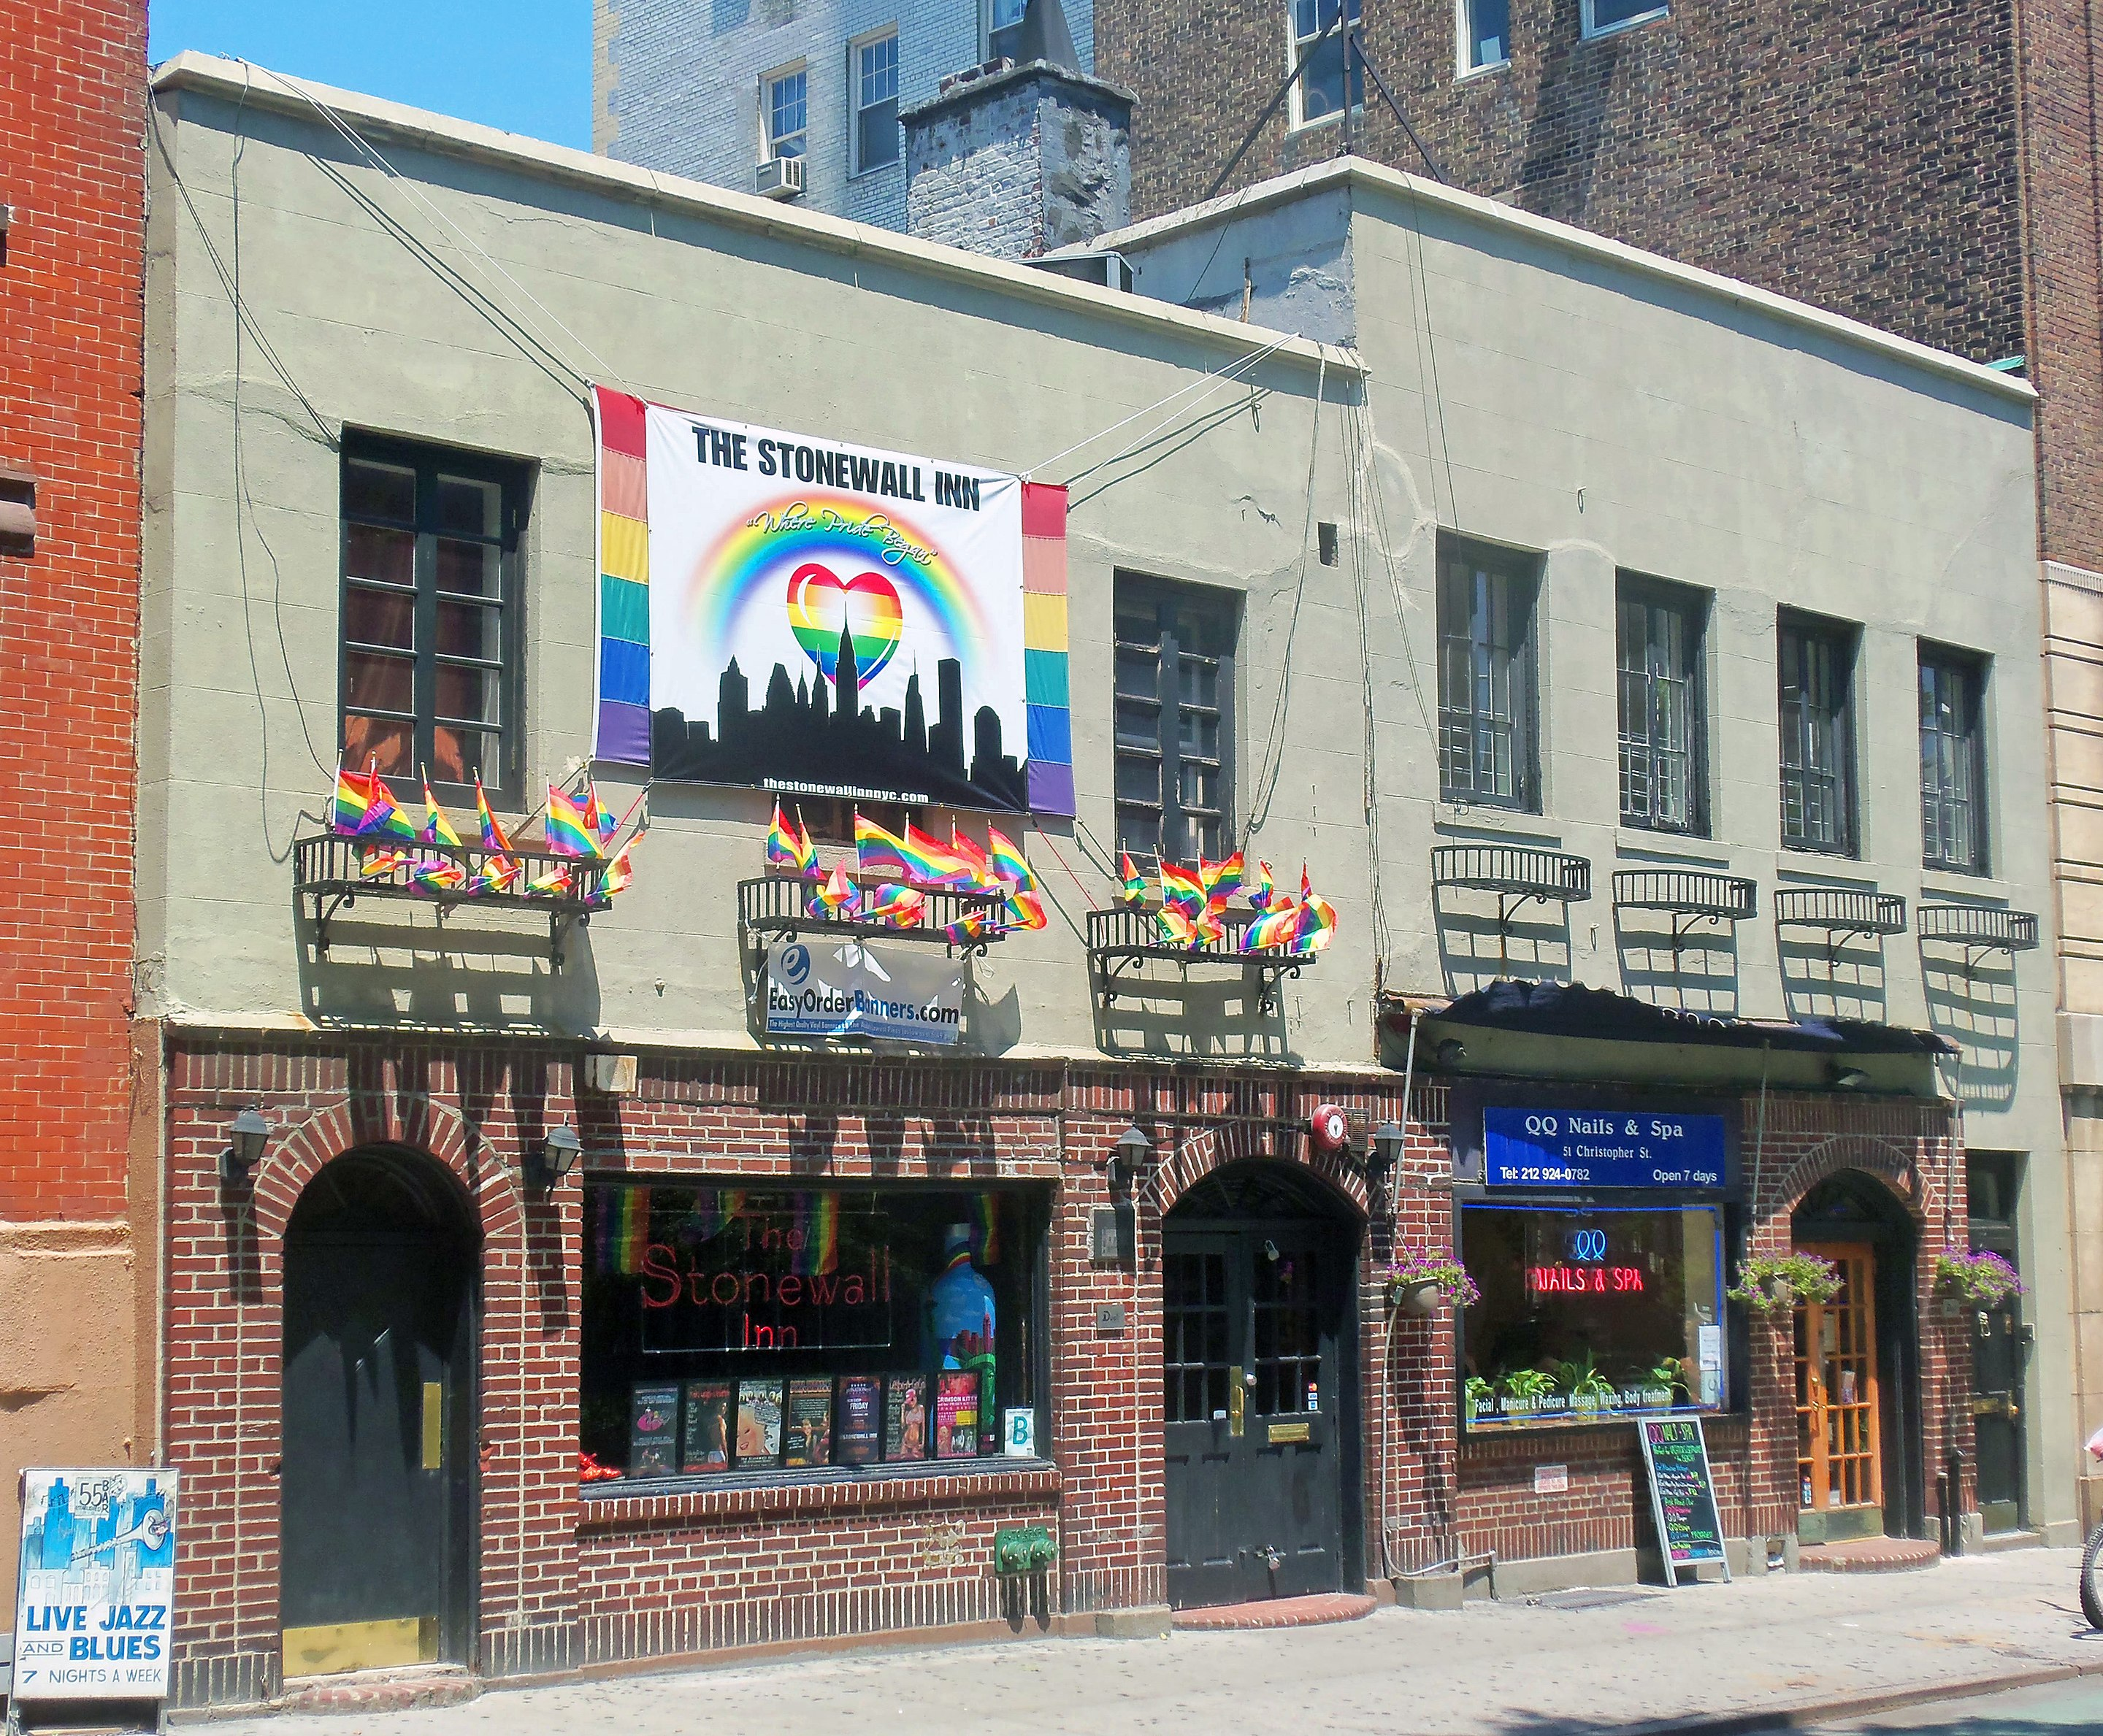 https://upload.wikimedia.org/wikipedia/commons/thumb/b/b2/Stonewall_Inn_2012_with_gay-pride_flags_and_banner.jpg/2880px-Stonewall_Inn_2012_with_gay-pride_flags_and_banner.jpg